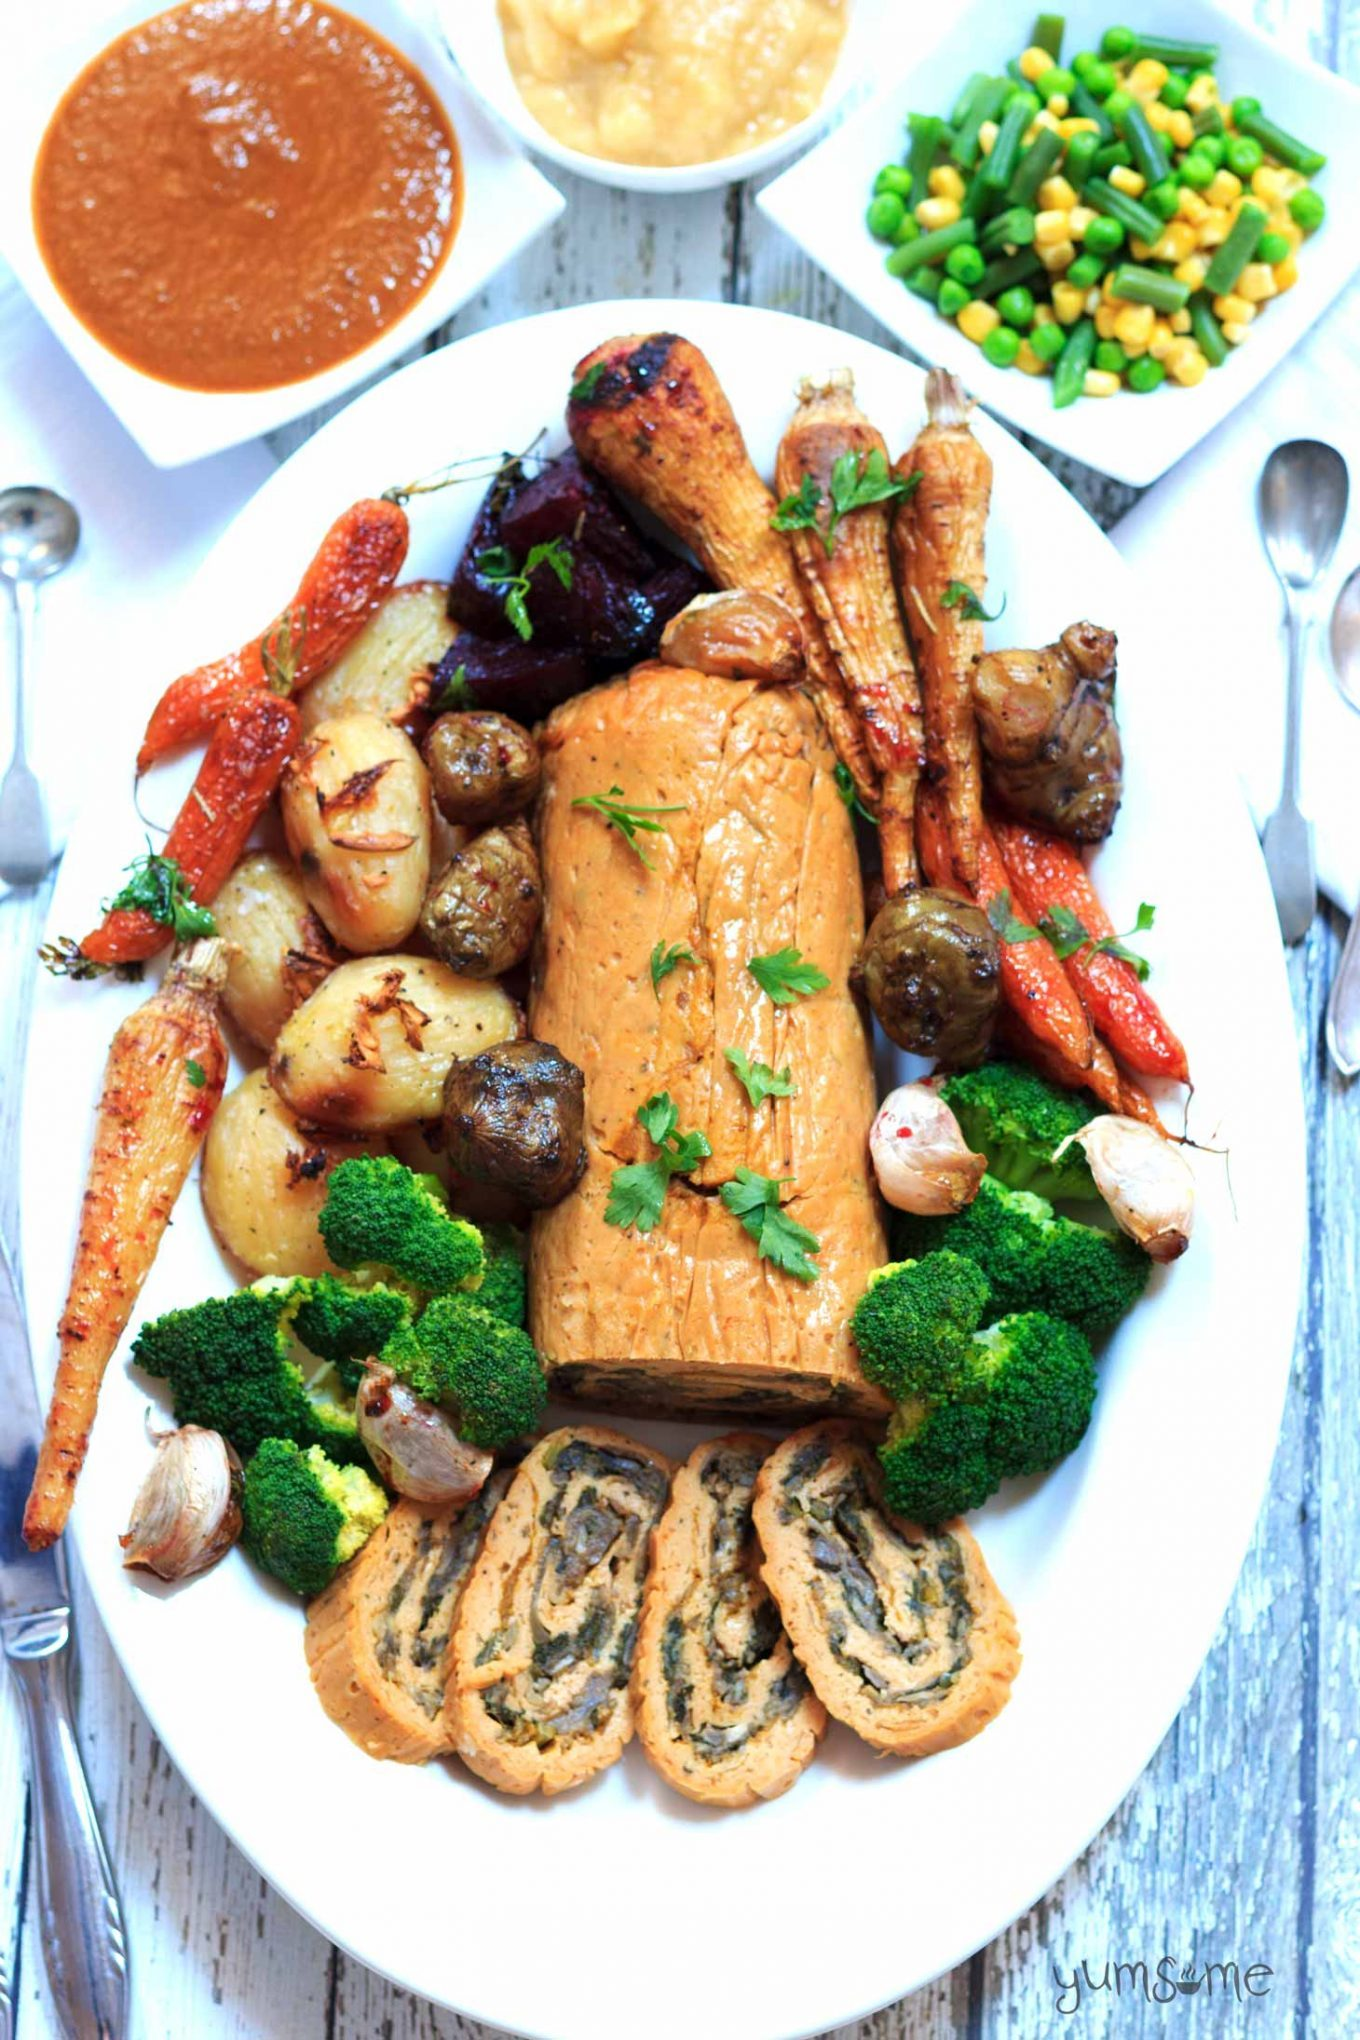 Overhead shot of a stuffed seitan roast on a platter, surrounded by roasted vegetables. Gravy, mashed potato, and steamed green beans are in white dishes in the background.